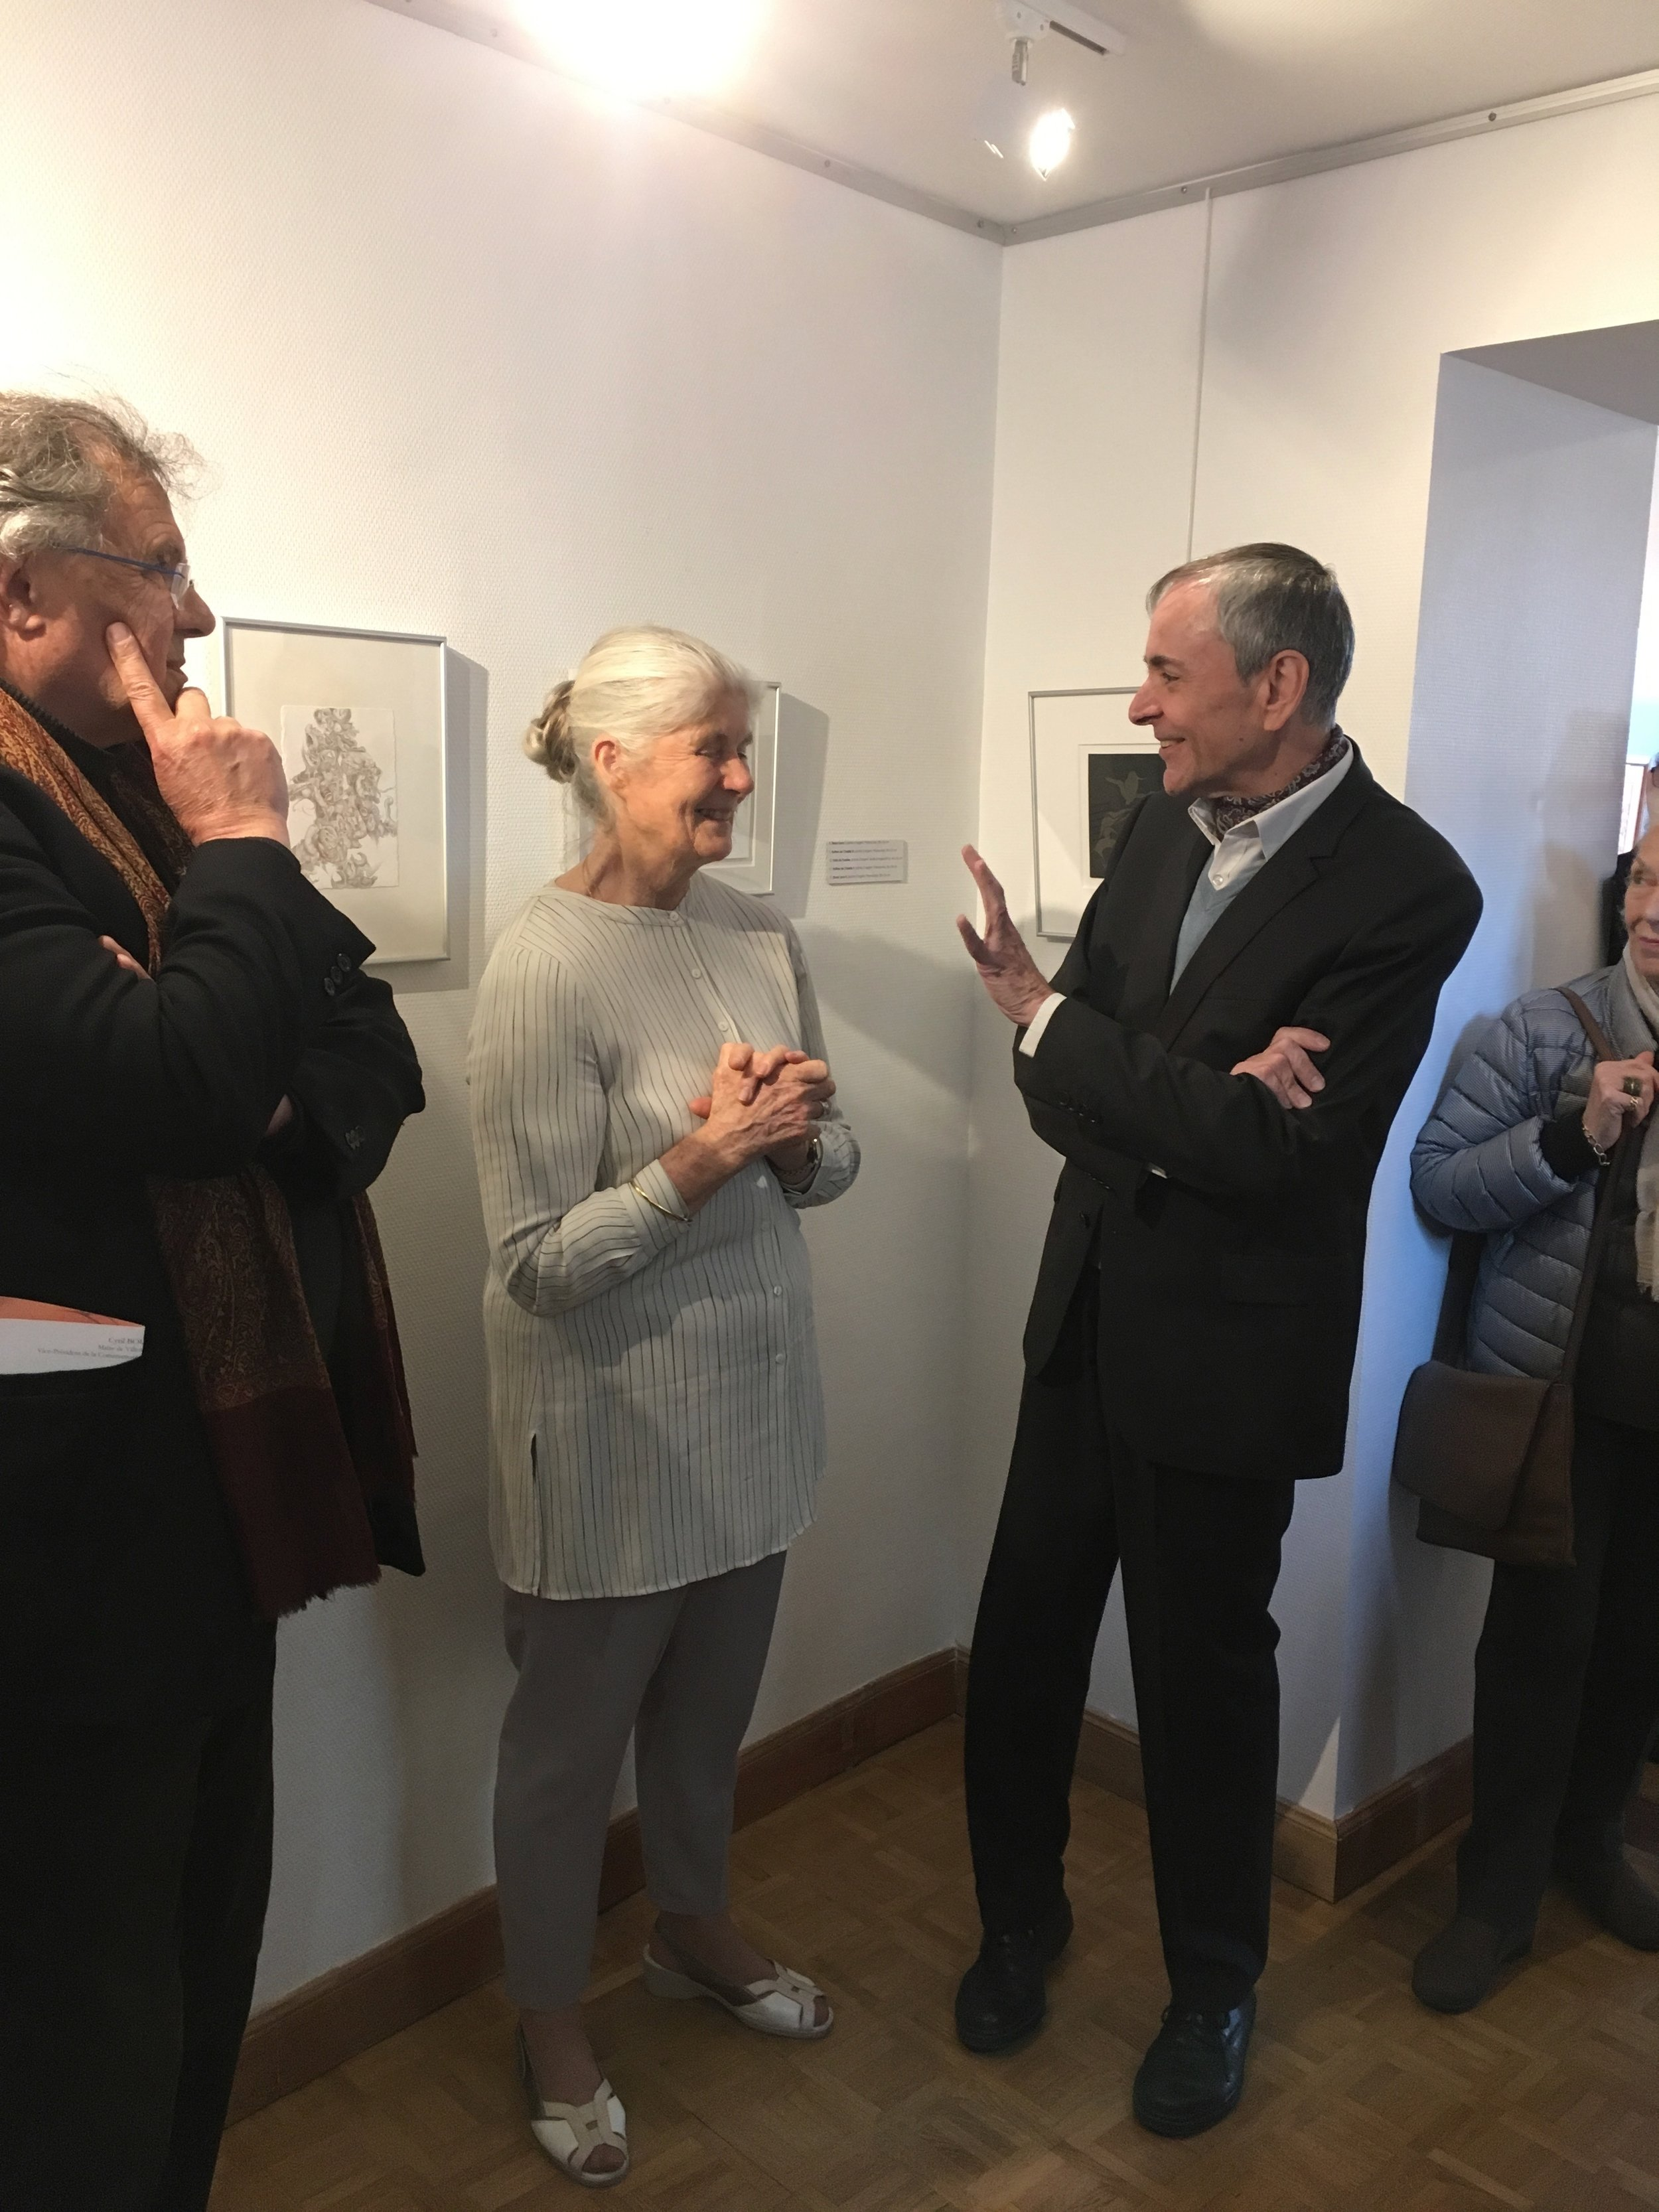 The Director, Jean Luc Dauphin, talking about my metalpoint drawings during the reception (Photograph courtesy of Michelle Anderson)